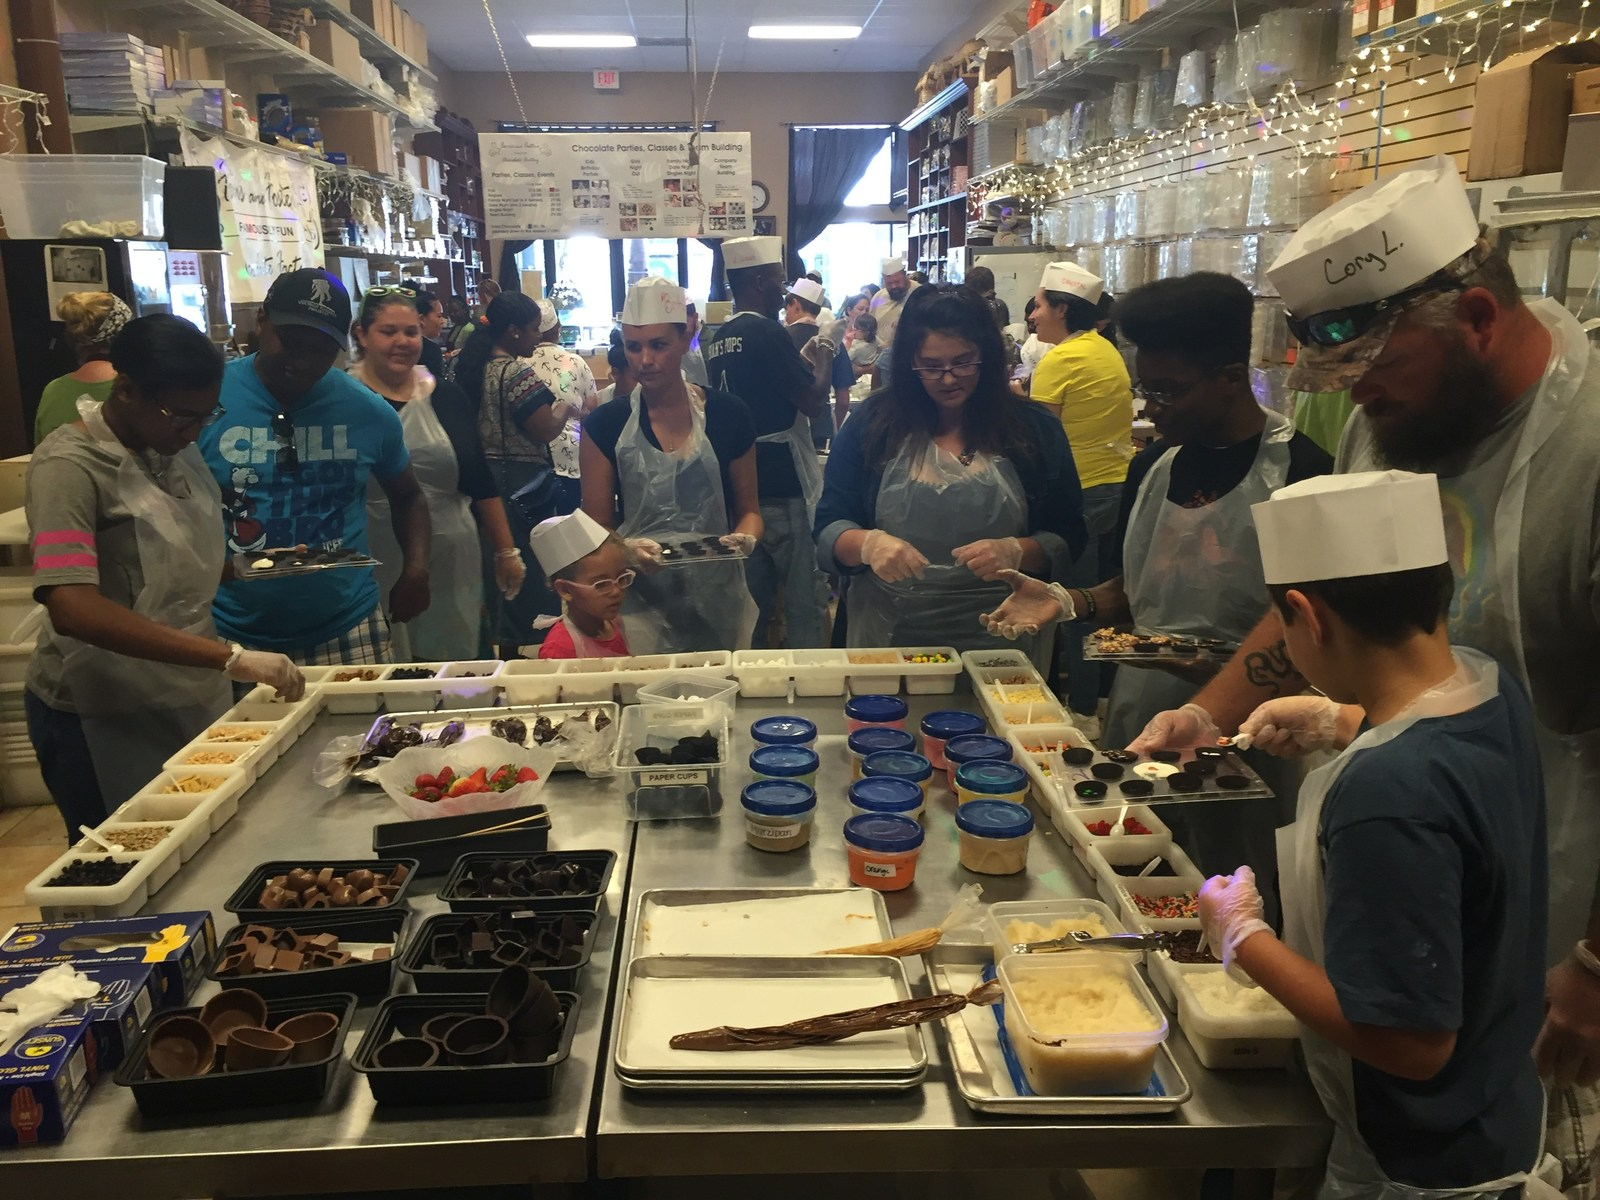 A group of Wounded Warrior Project(R) (WWP) veterans and family members got to experience a day in the life of a chocolatier during a recent candy-making connection event.